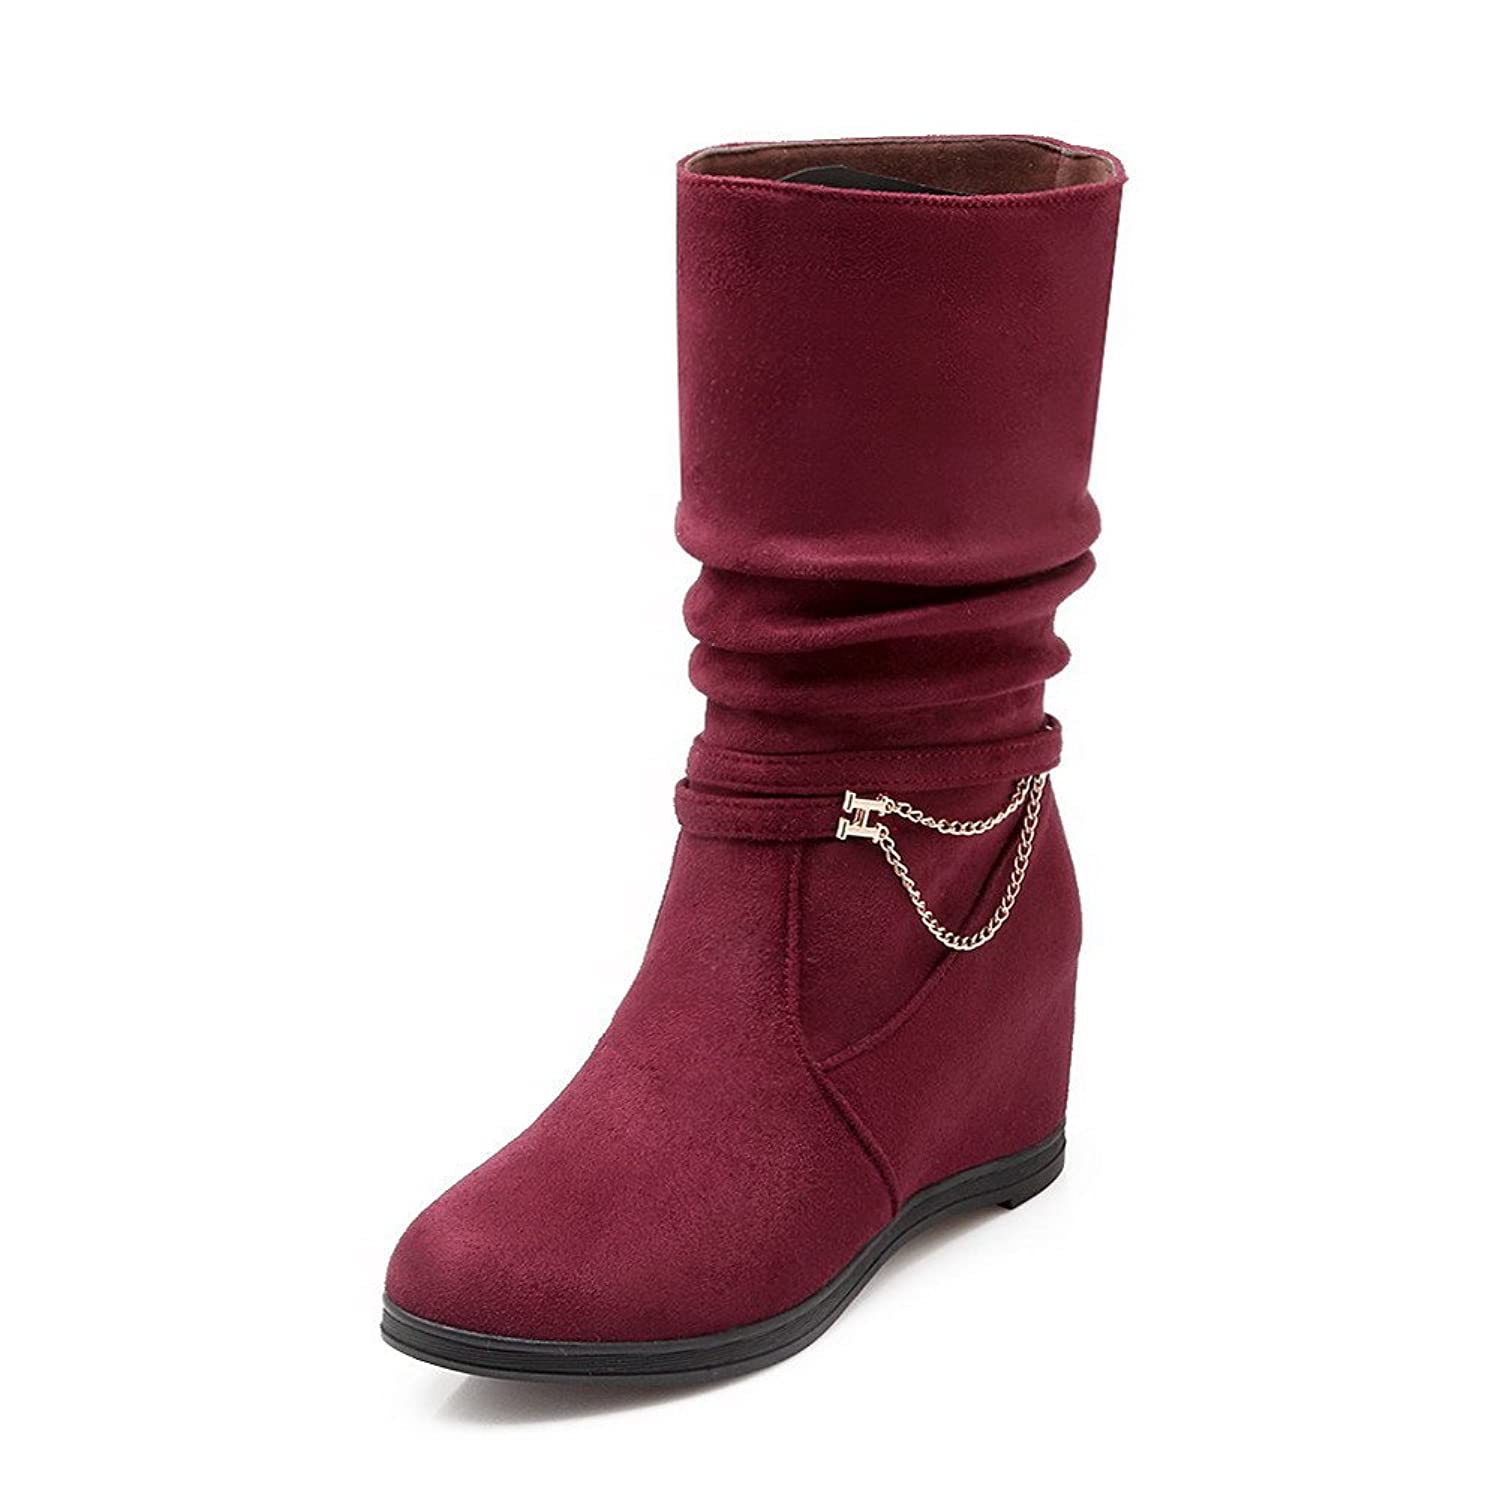 VogueZone009 Women's High Heels Frosted Solid Pull On Round Closed Toe Boots